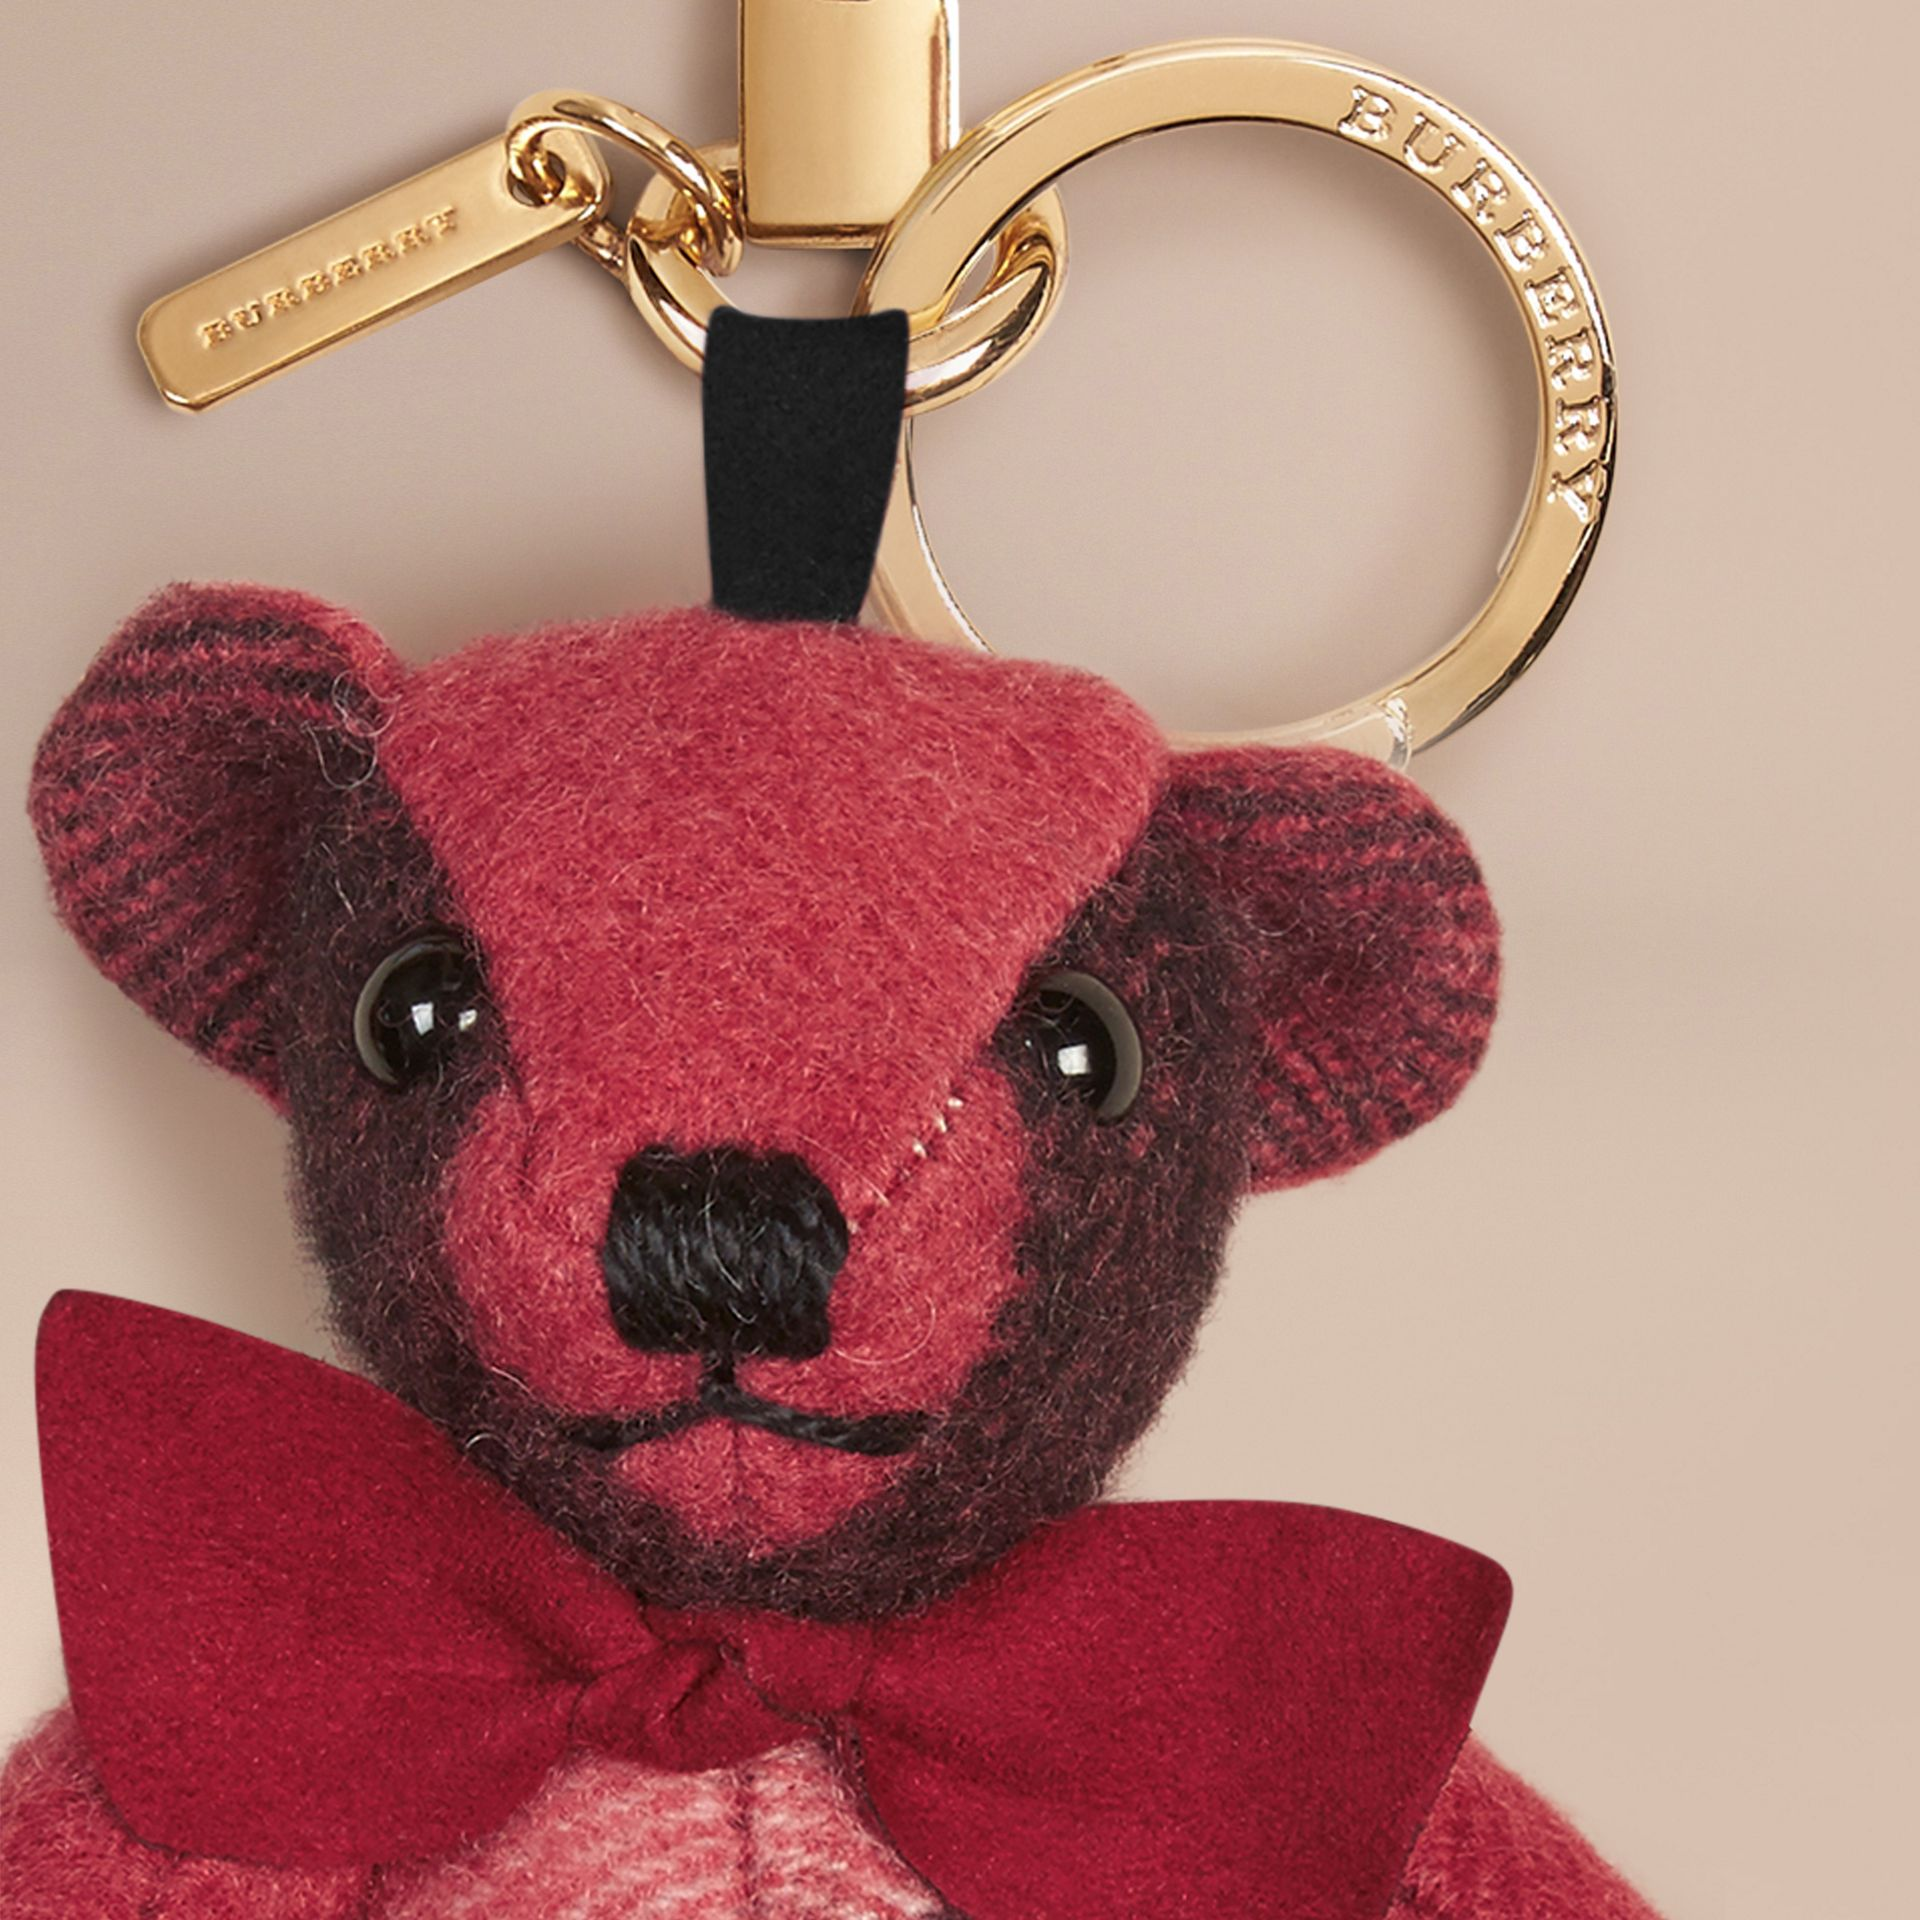 Rose blush Bijou porte-clés Thomas Bear en cachemire à motif check Rose Blush - photo de la galerie 2